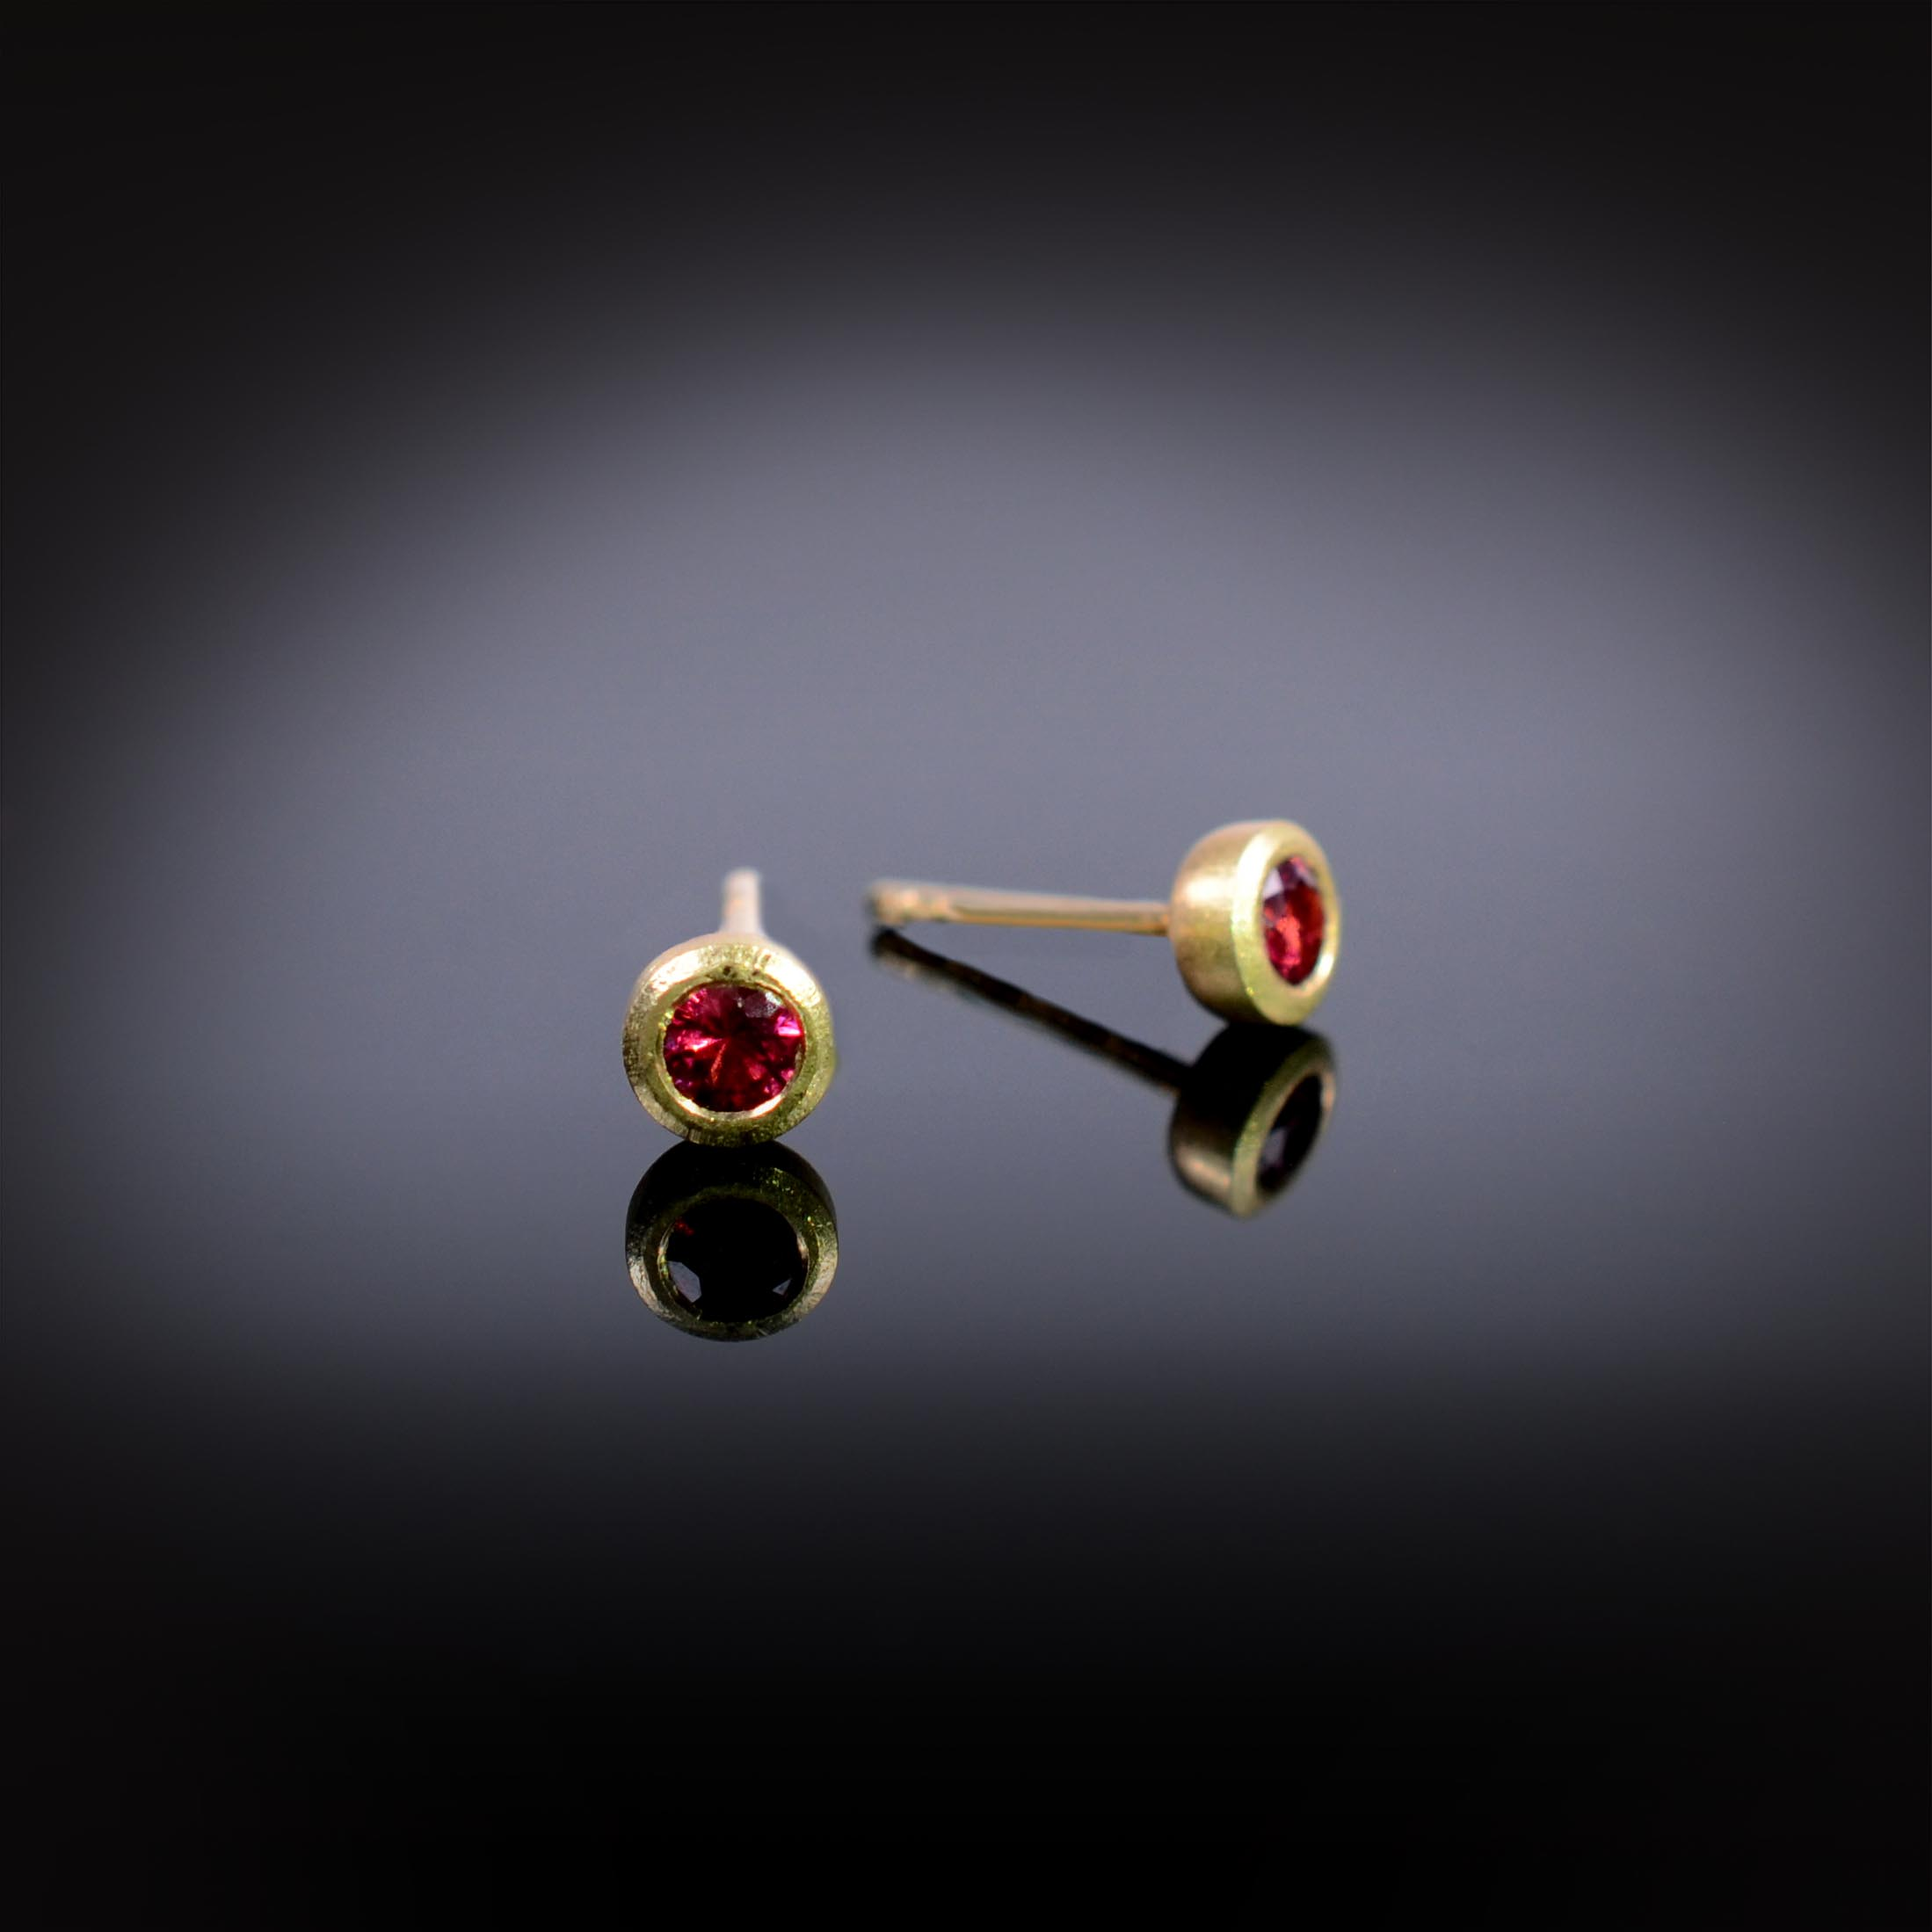 18K brushed yellow gold stud earrings with red Spinels